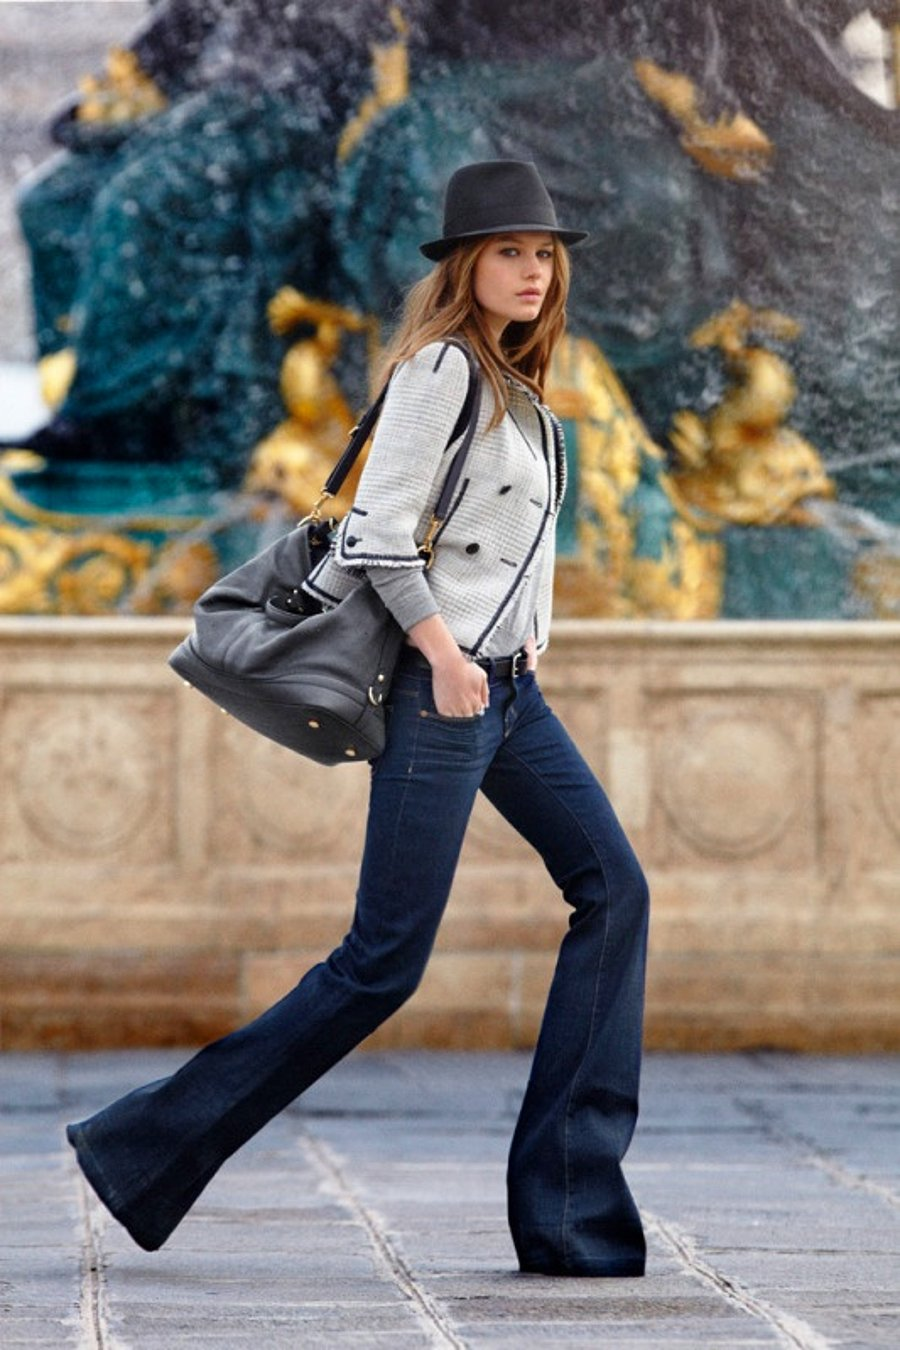 9 Ultra-Cool Ways to Wear Flared Jeans – Fedora, Grey Jacket, Street Style